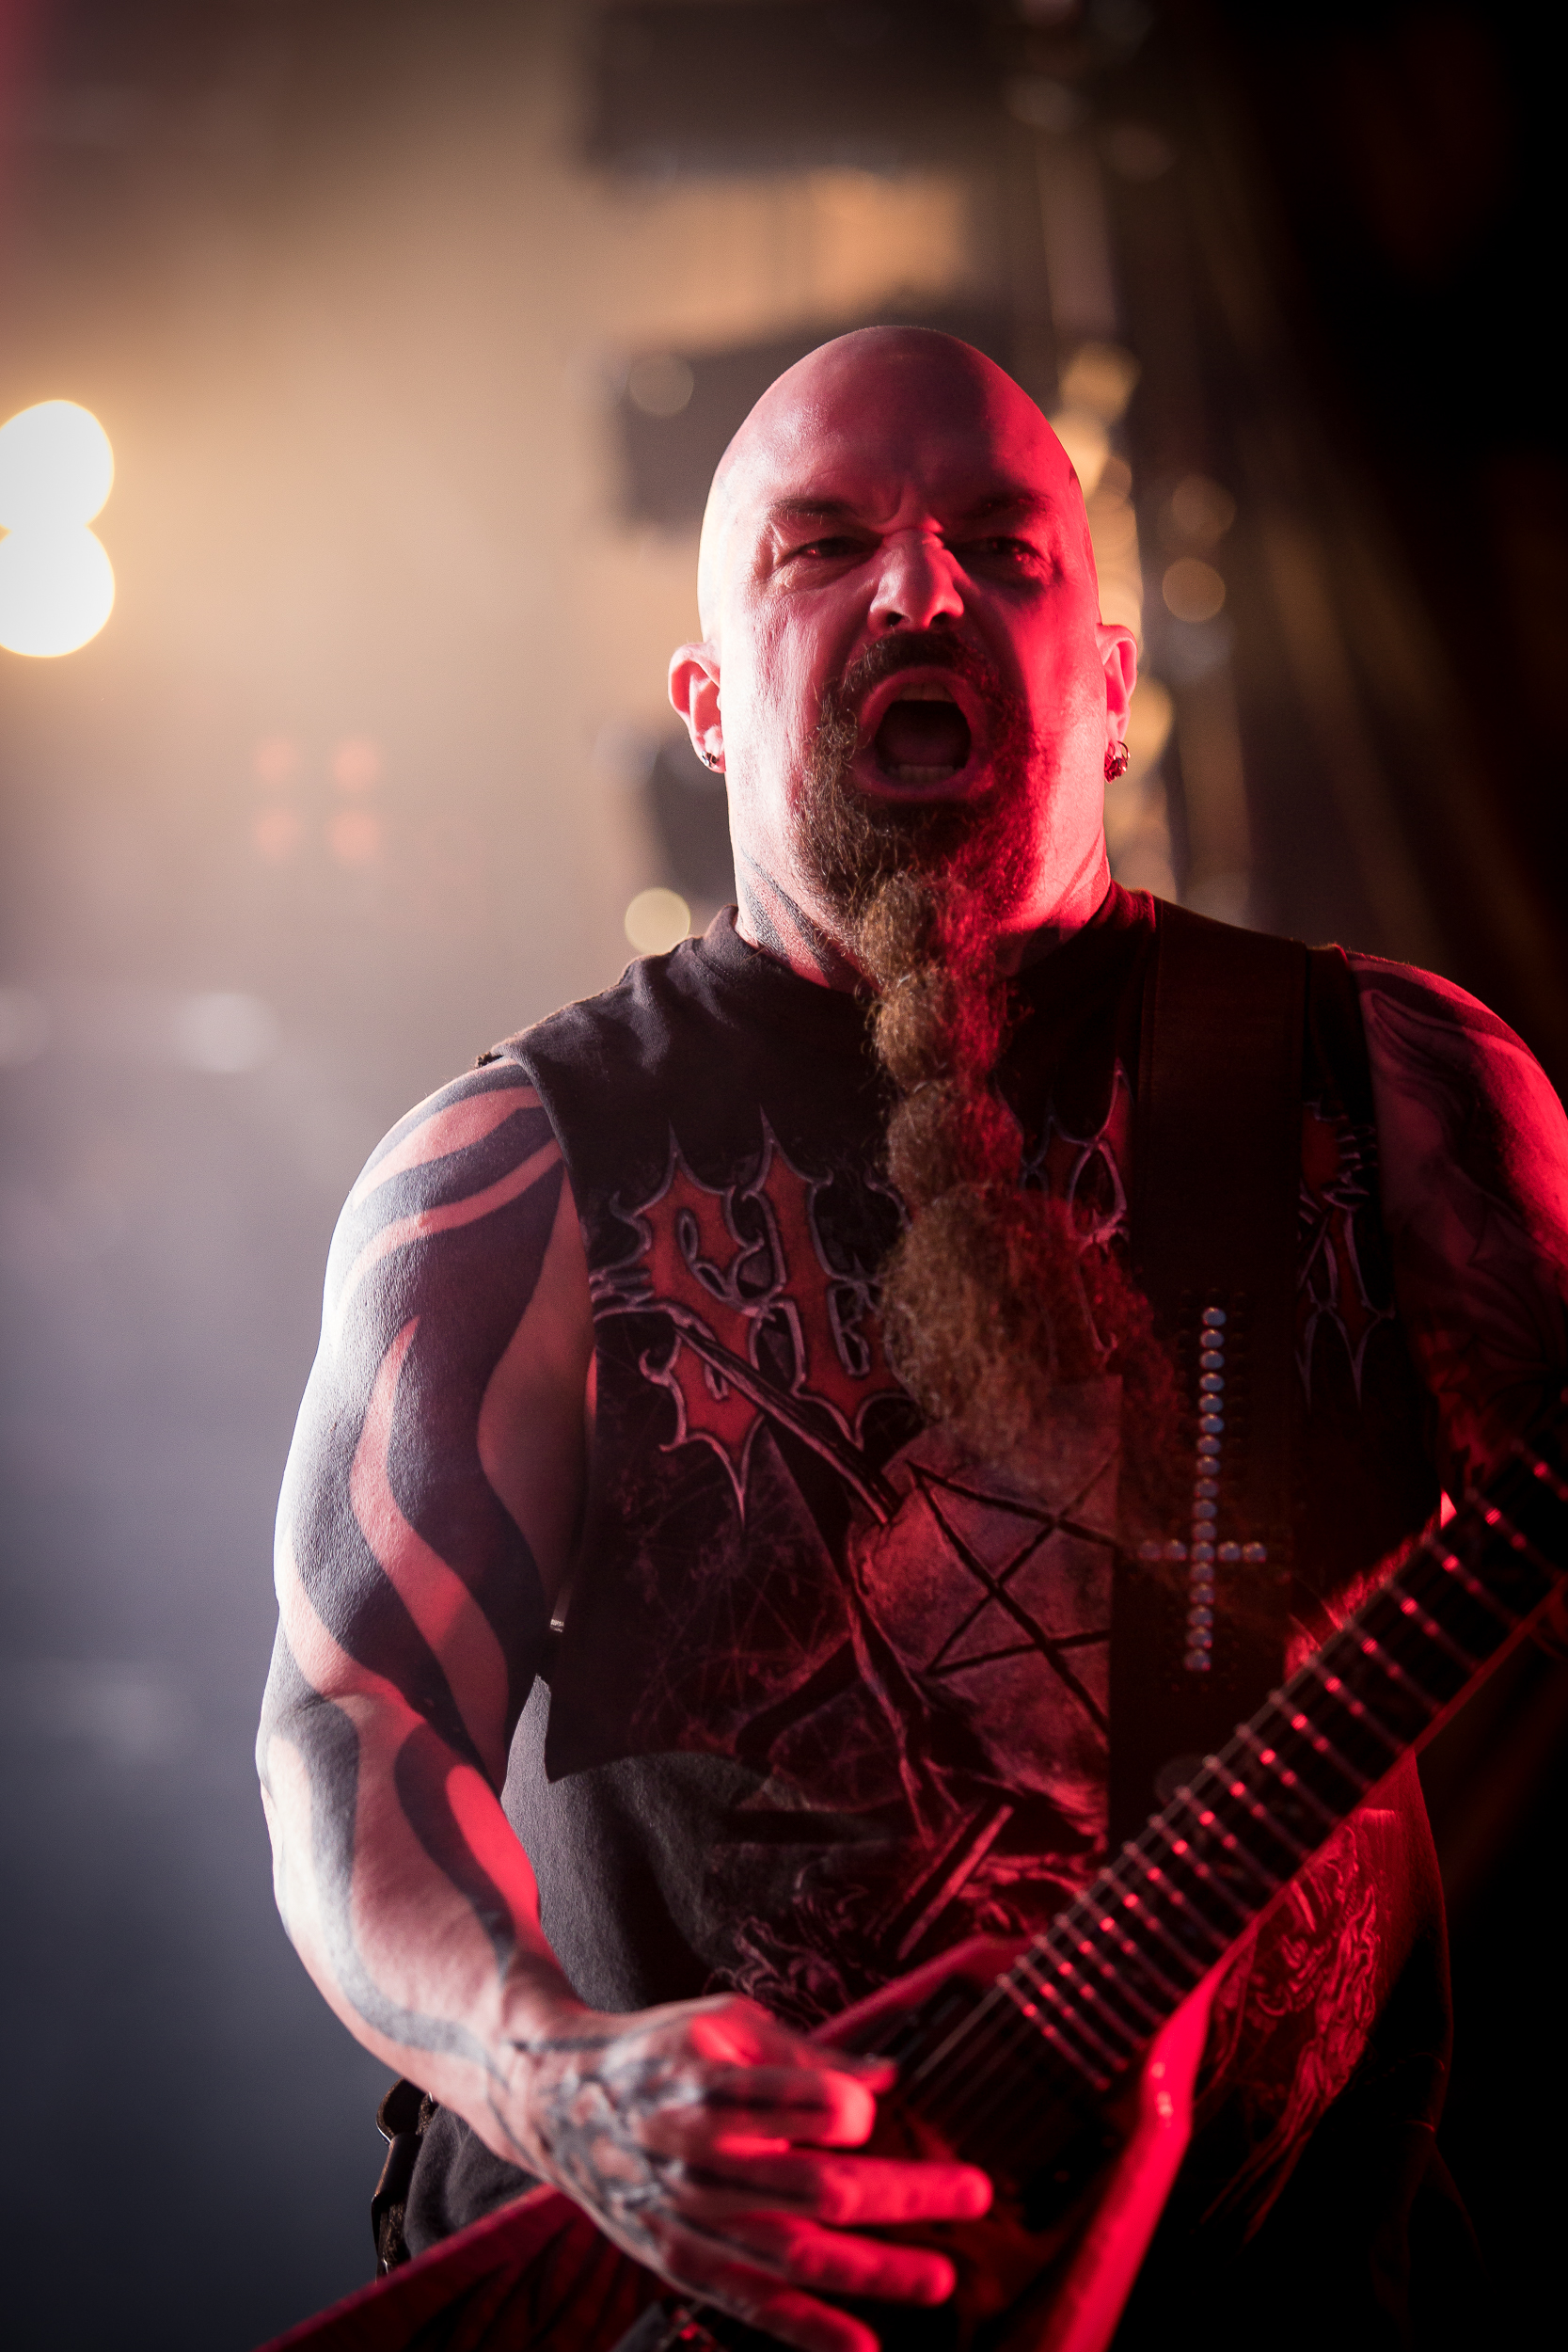 Slayer live at Øyafestivalen 2013, Oslo.